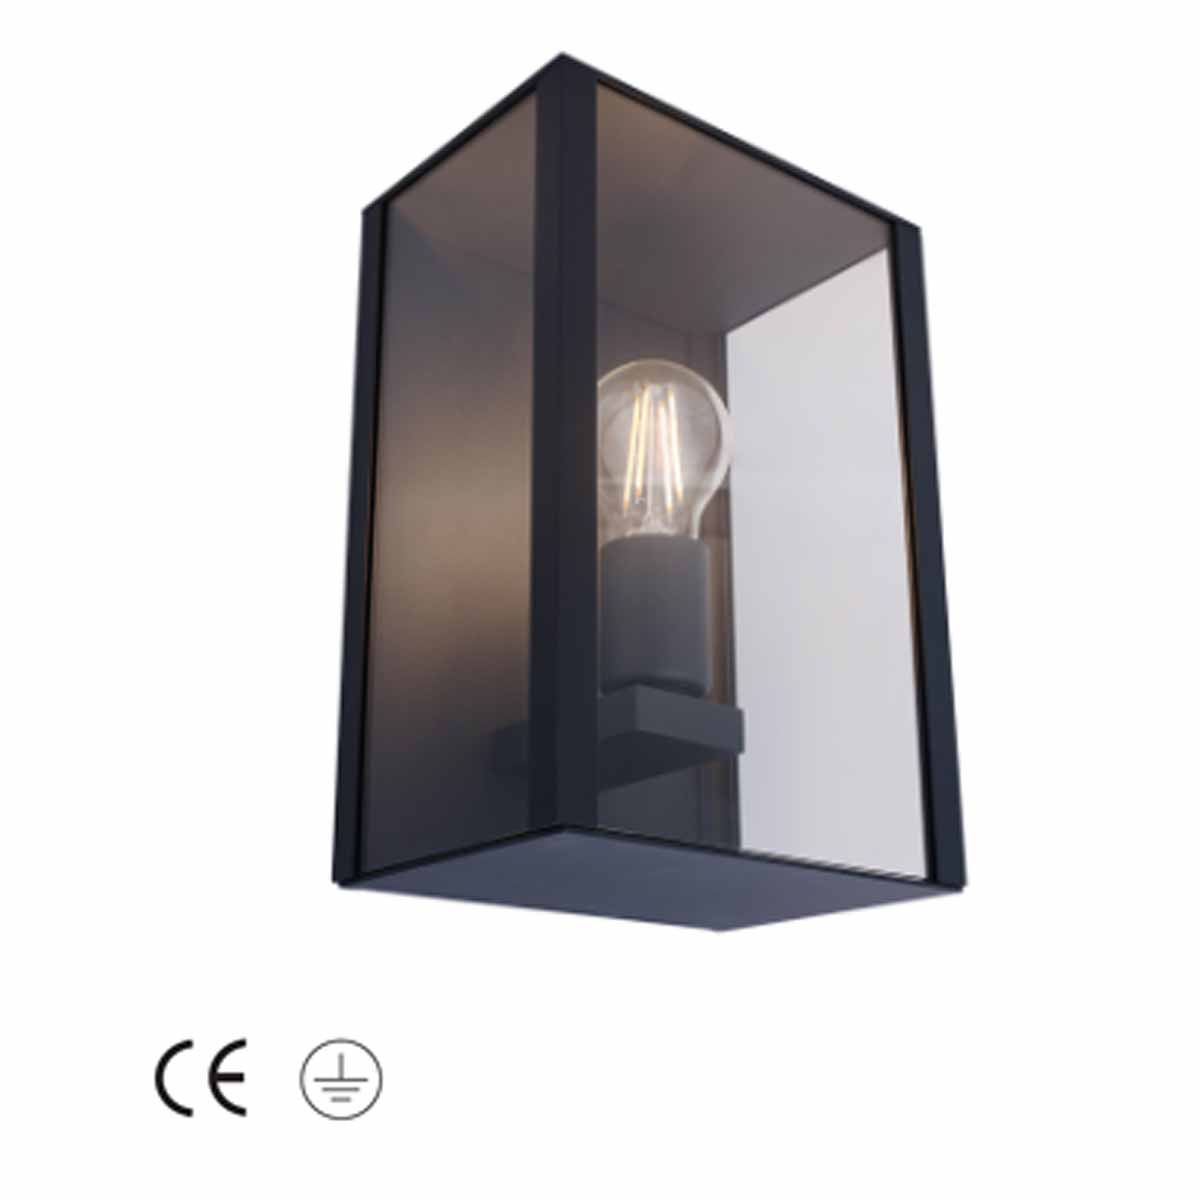 Calore E27 Wall Lantern IP44